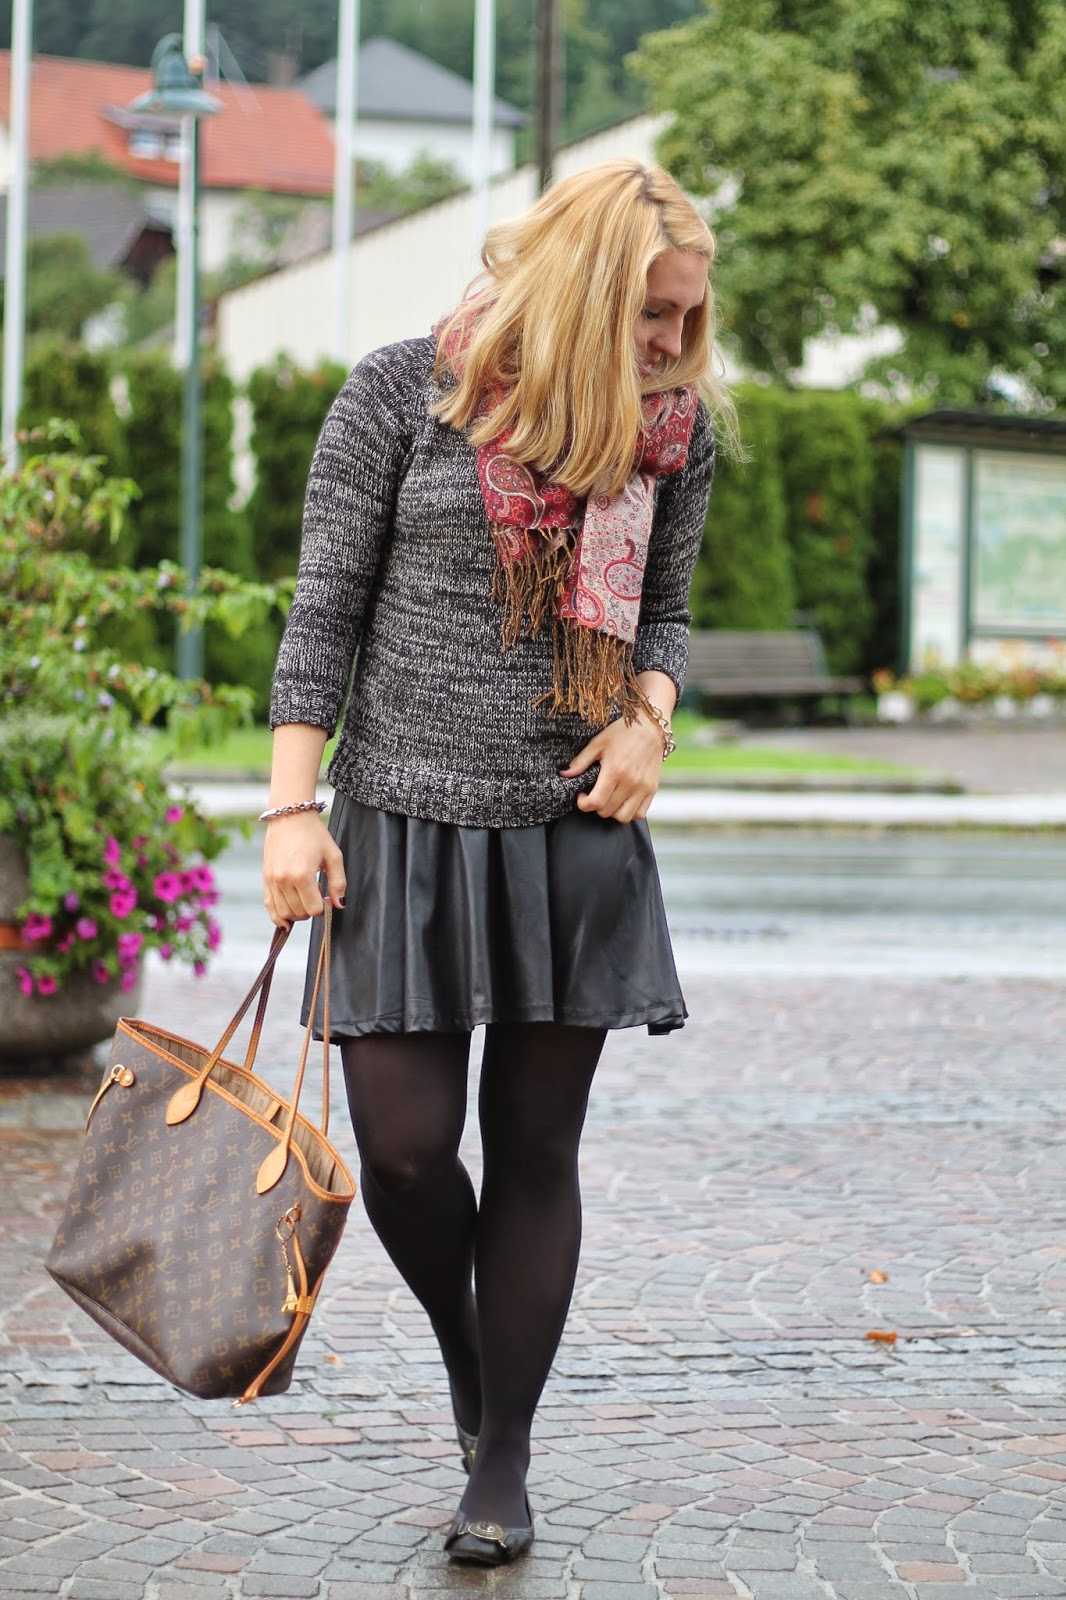 Fashionblogger Austria / Österreich / Deutsch / German / Kärnten / Carinthia / Klagenfurt / Köttmannsdorf / Spring Look / Classy / Edgy / Autumn / Autumn Style 2014 / Autumn Look / Fashionista Look / Zara Grey Sweater / Black Leather Skirt C&A Clockhouse / Louis Vuitton Neverfull MM Monogram Canvas / Burberry Black Flats / Guess Bracelet /